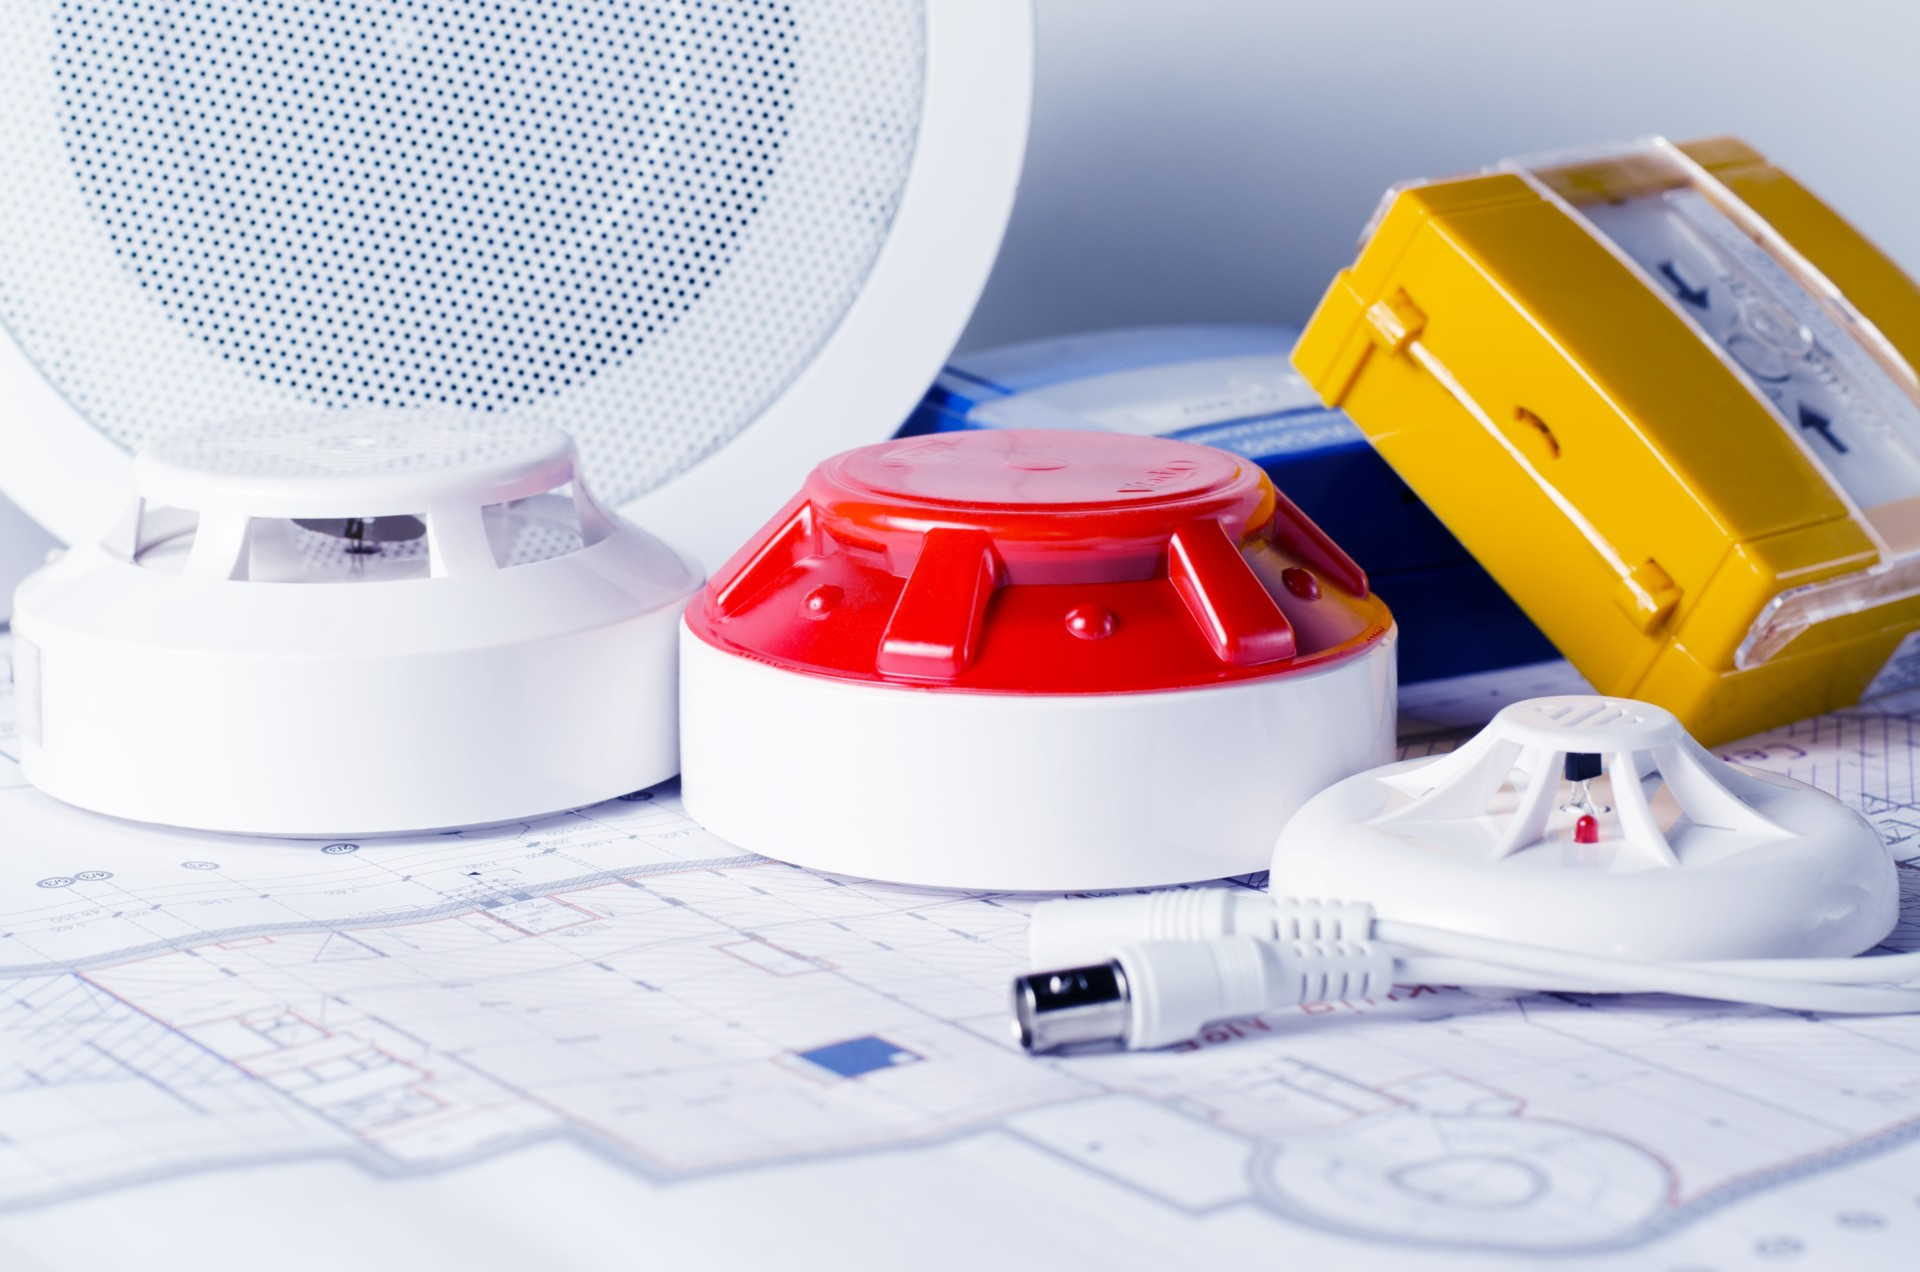 fire-security-equipment-blueprint-table-good-security-service-engineering-company-site-min